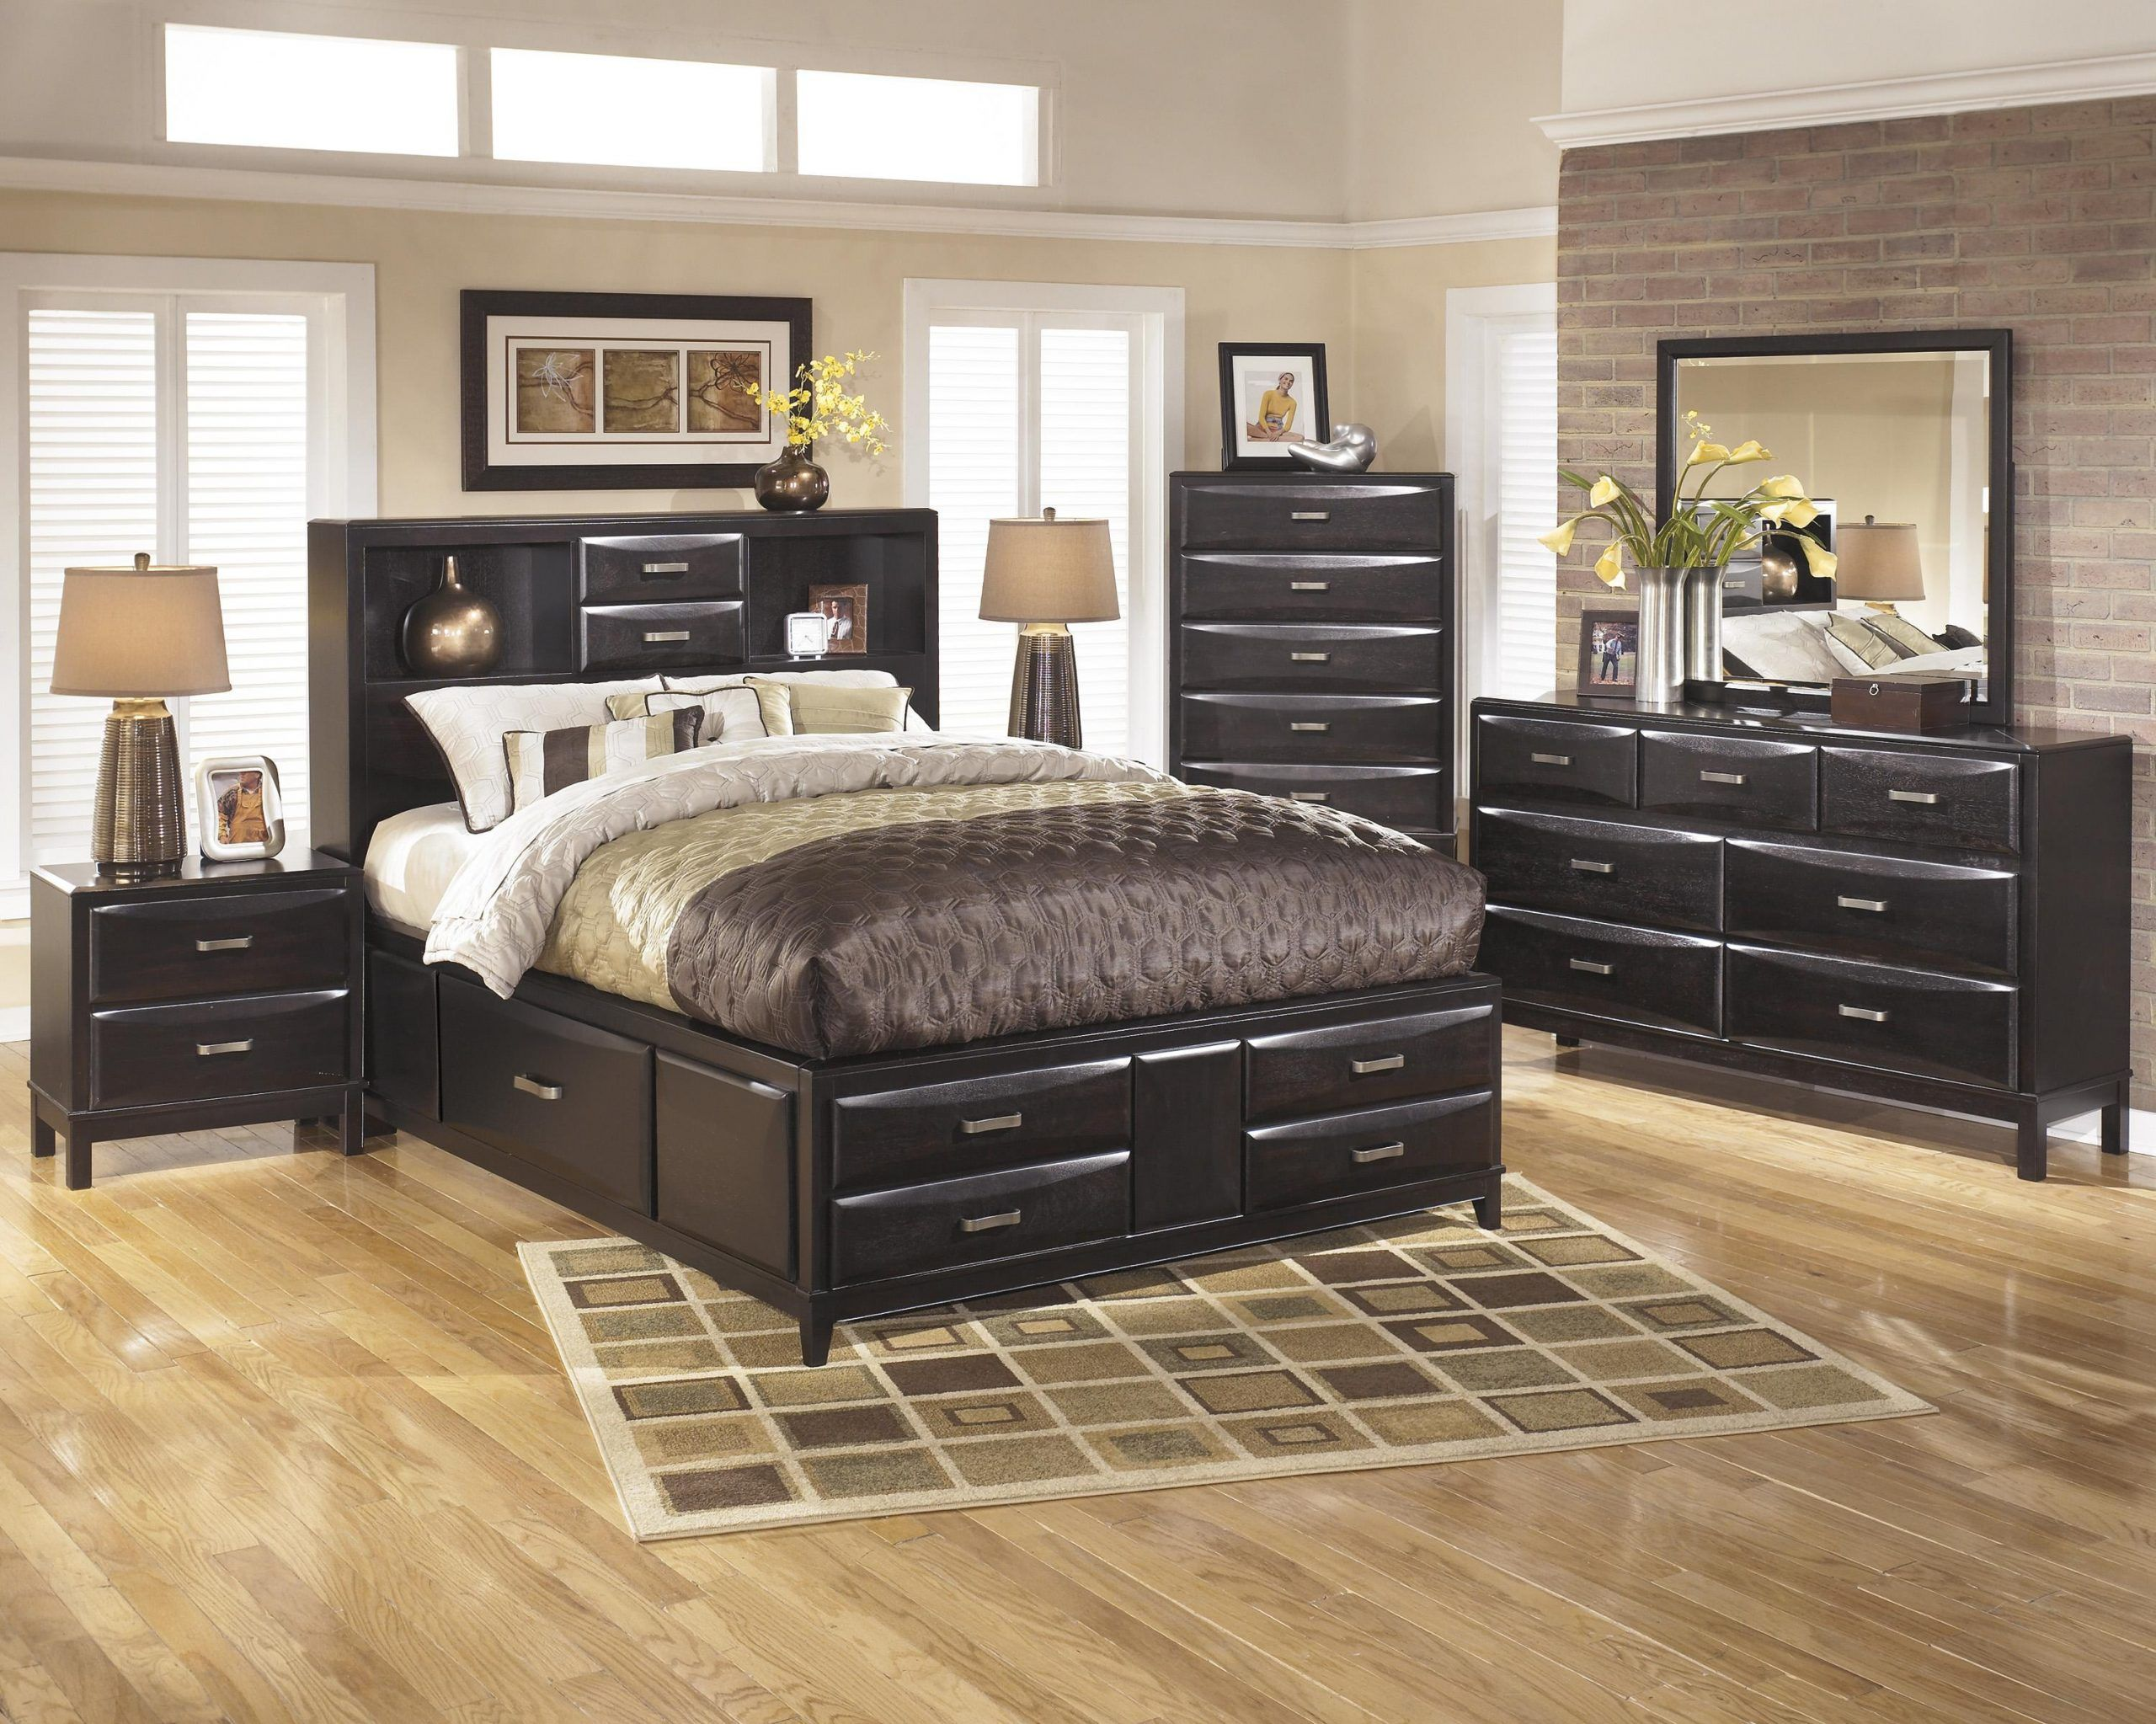 Kira King Bedroom Group with regard to Ashley Furniture